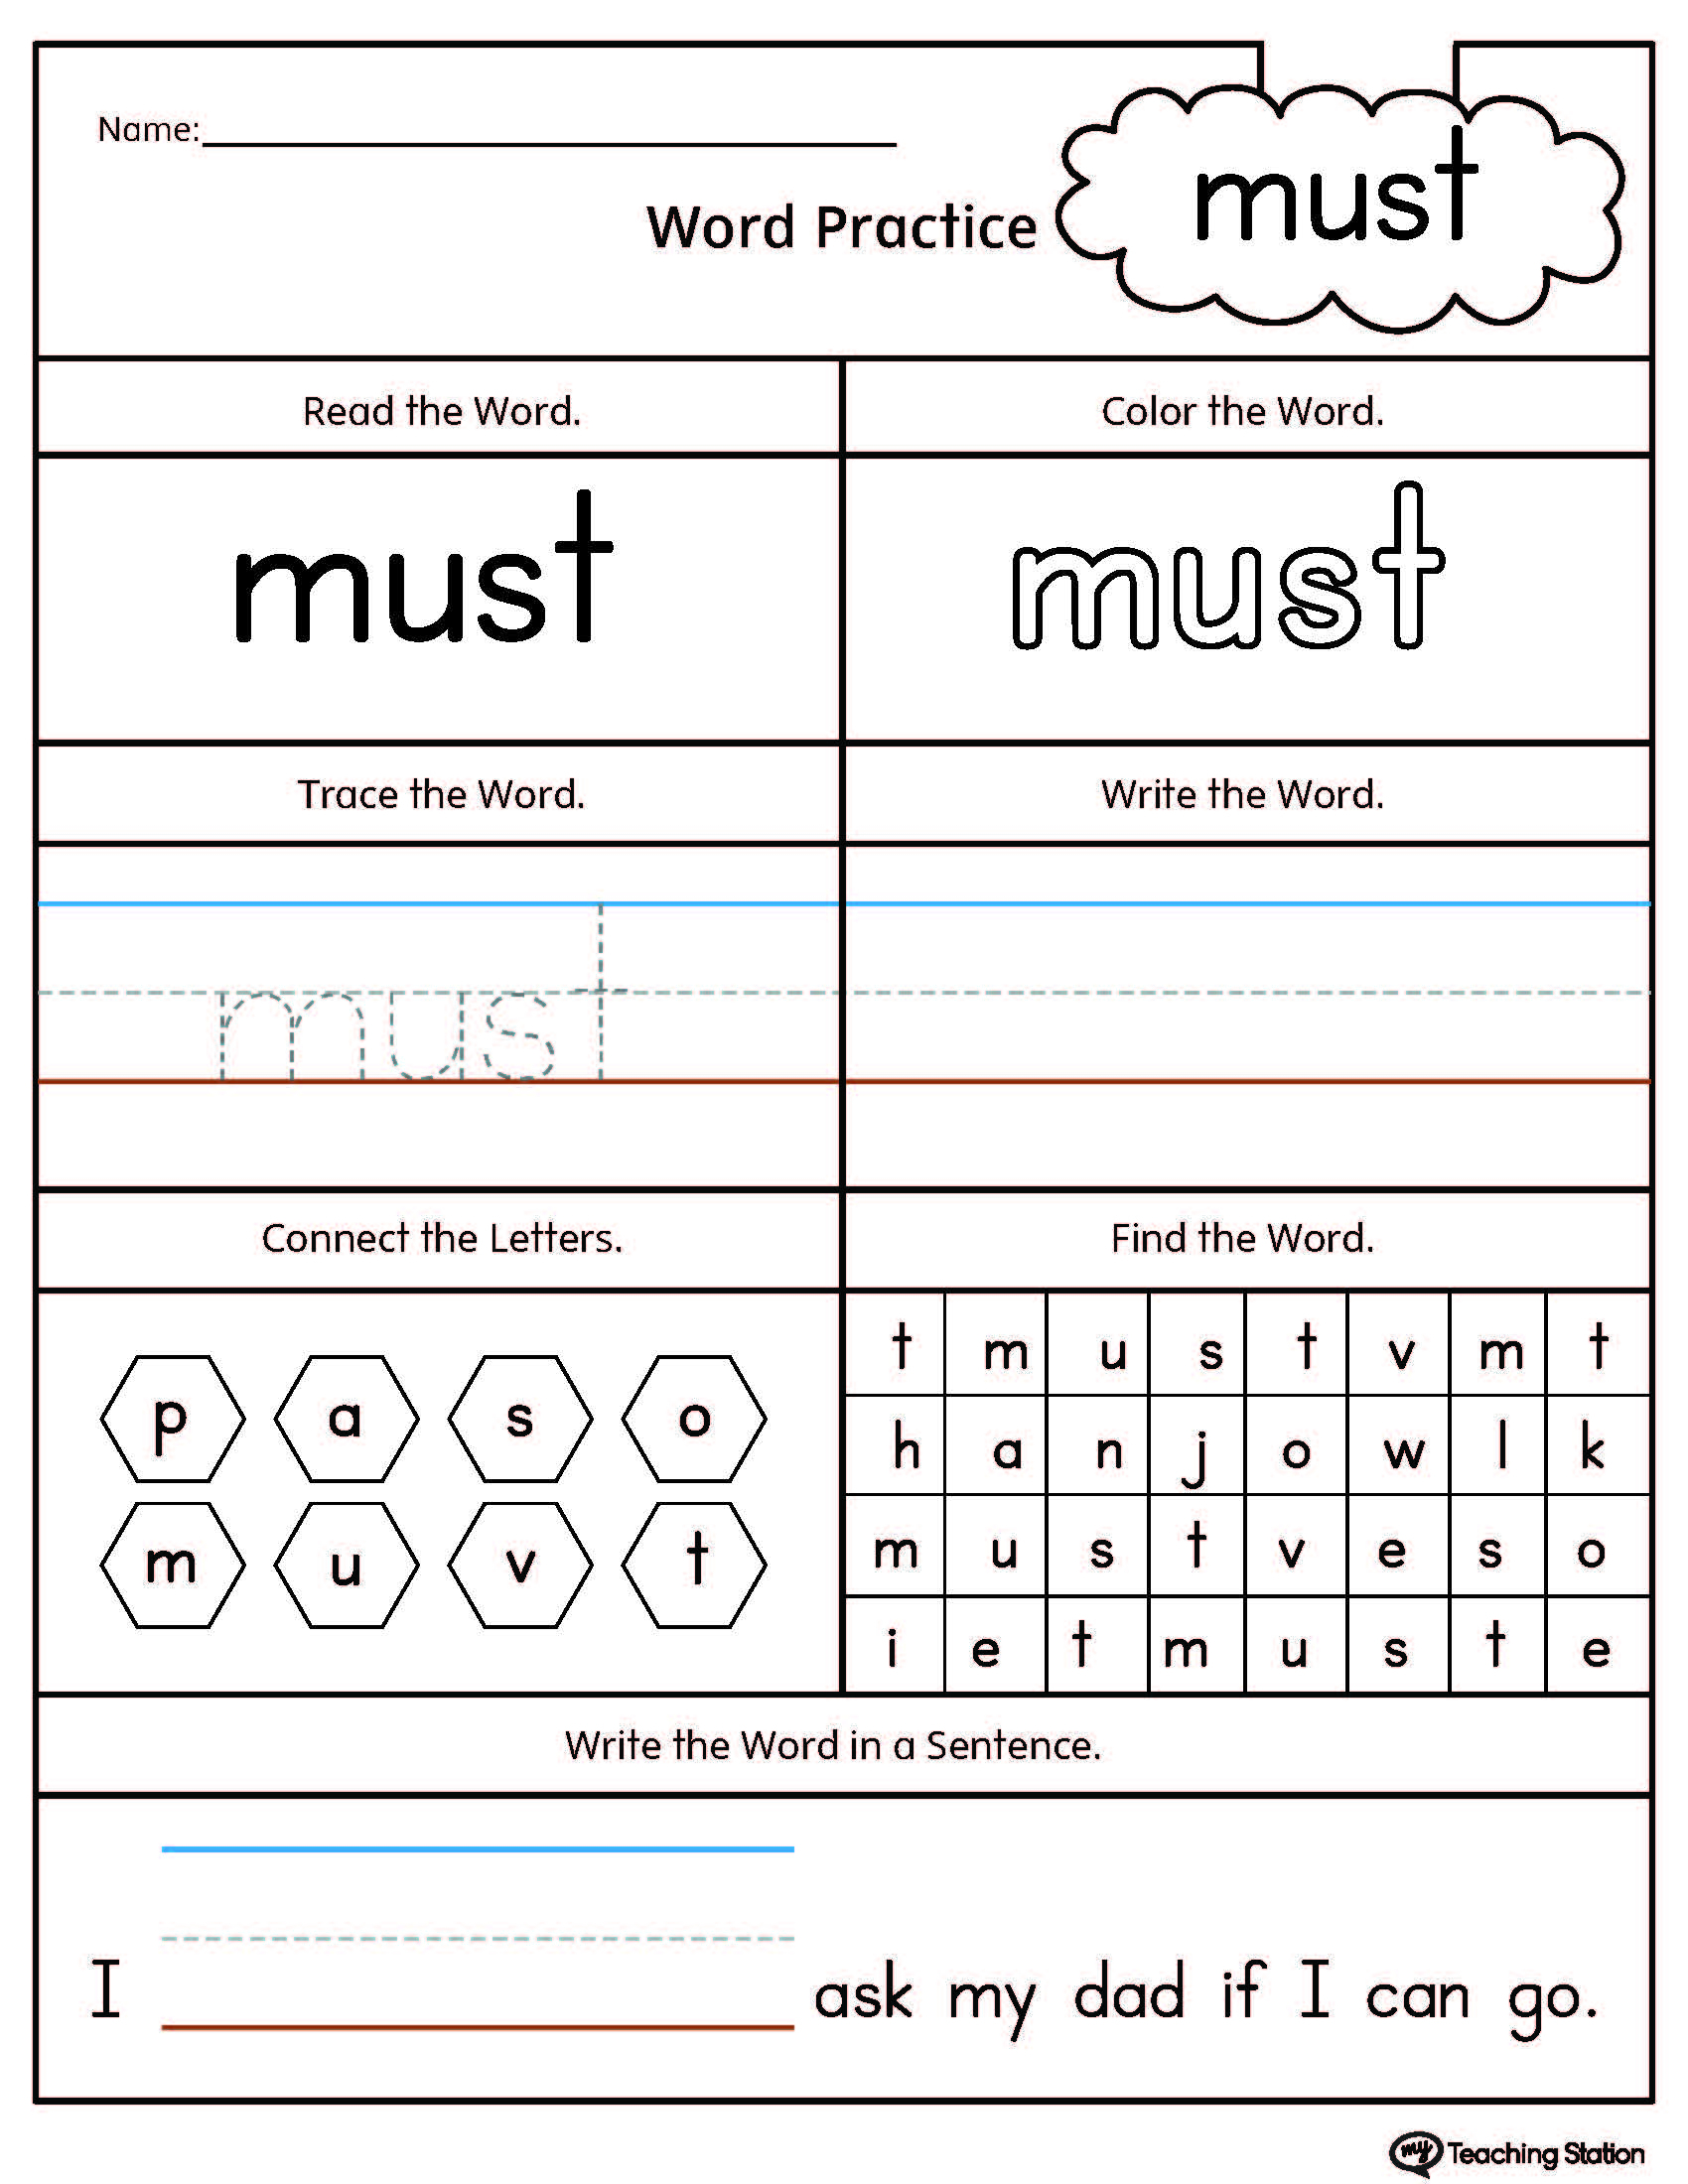 High-Frequency Word Must Printable Worksheet | Myteachingstation | Printable Worksheets Com